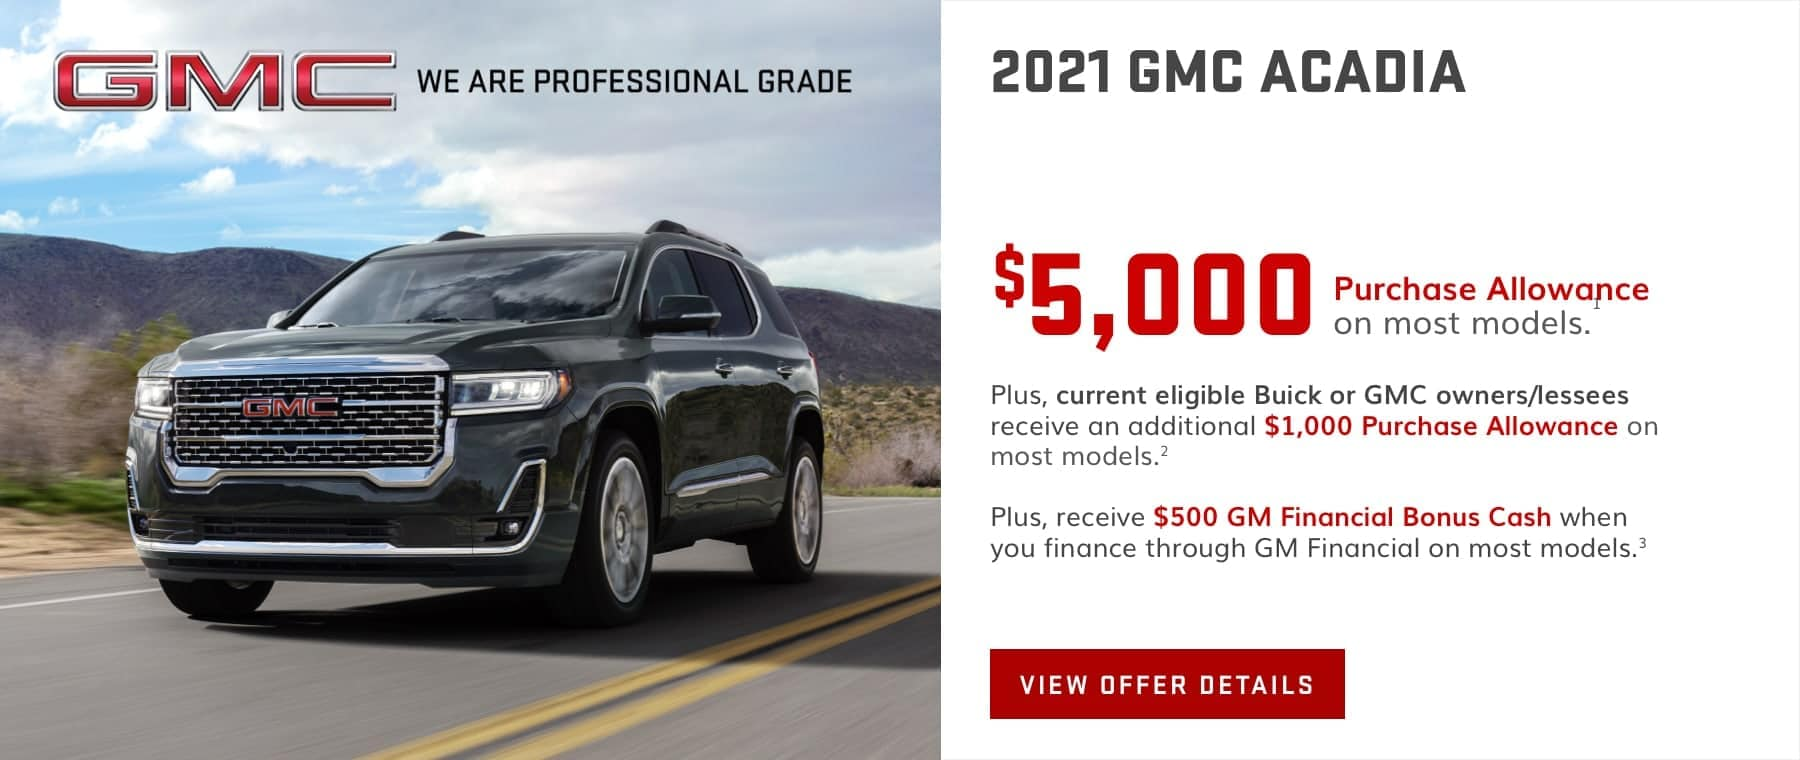 GMC Acadia May Offer